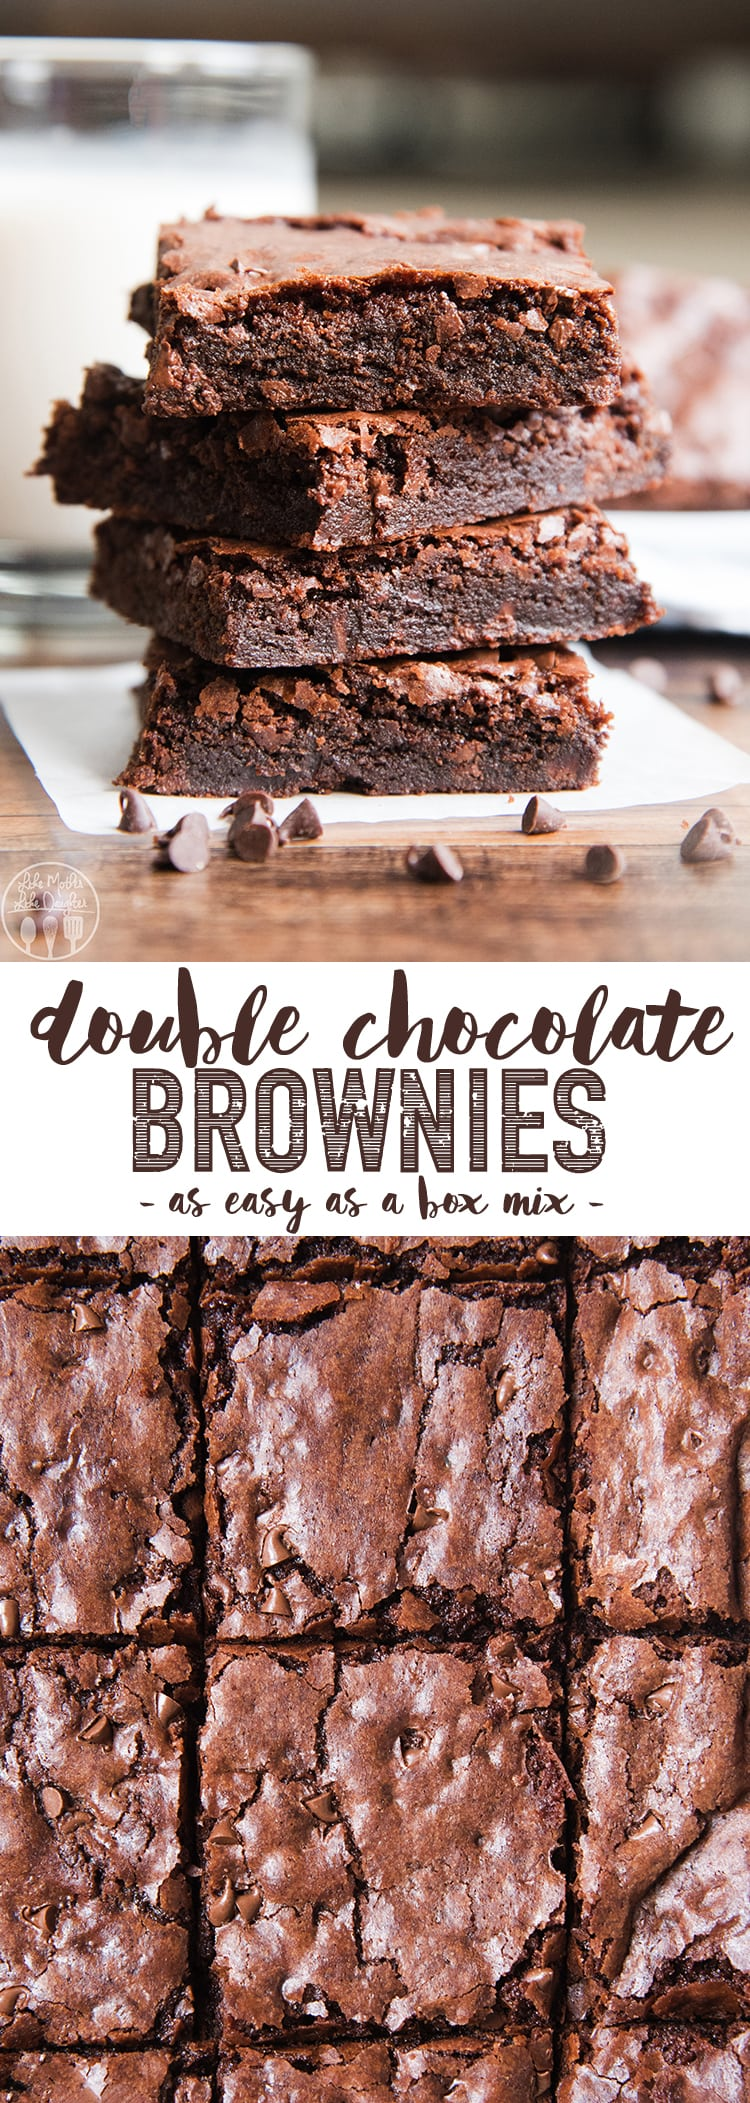 These double chocolate brownies are the best brownies you can make at home, as simple as a boxed mix, but so much better. The perfect fudgy, chewy, chocolatey brownie! #brownie #chocolate #doublechocolate #chocolatebrownie #easydessert #30minutedessert #dessert